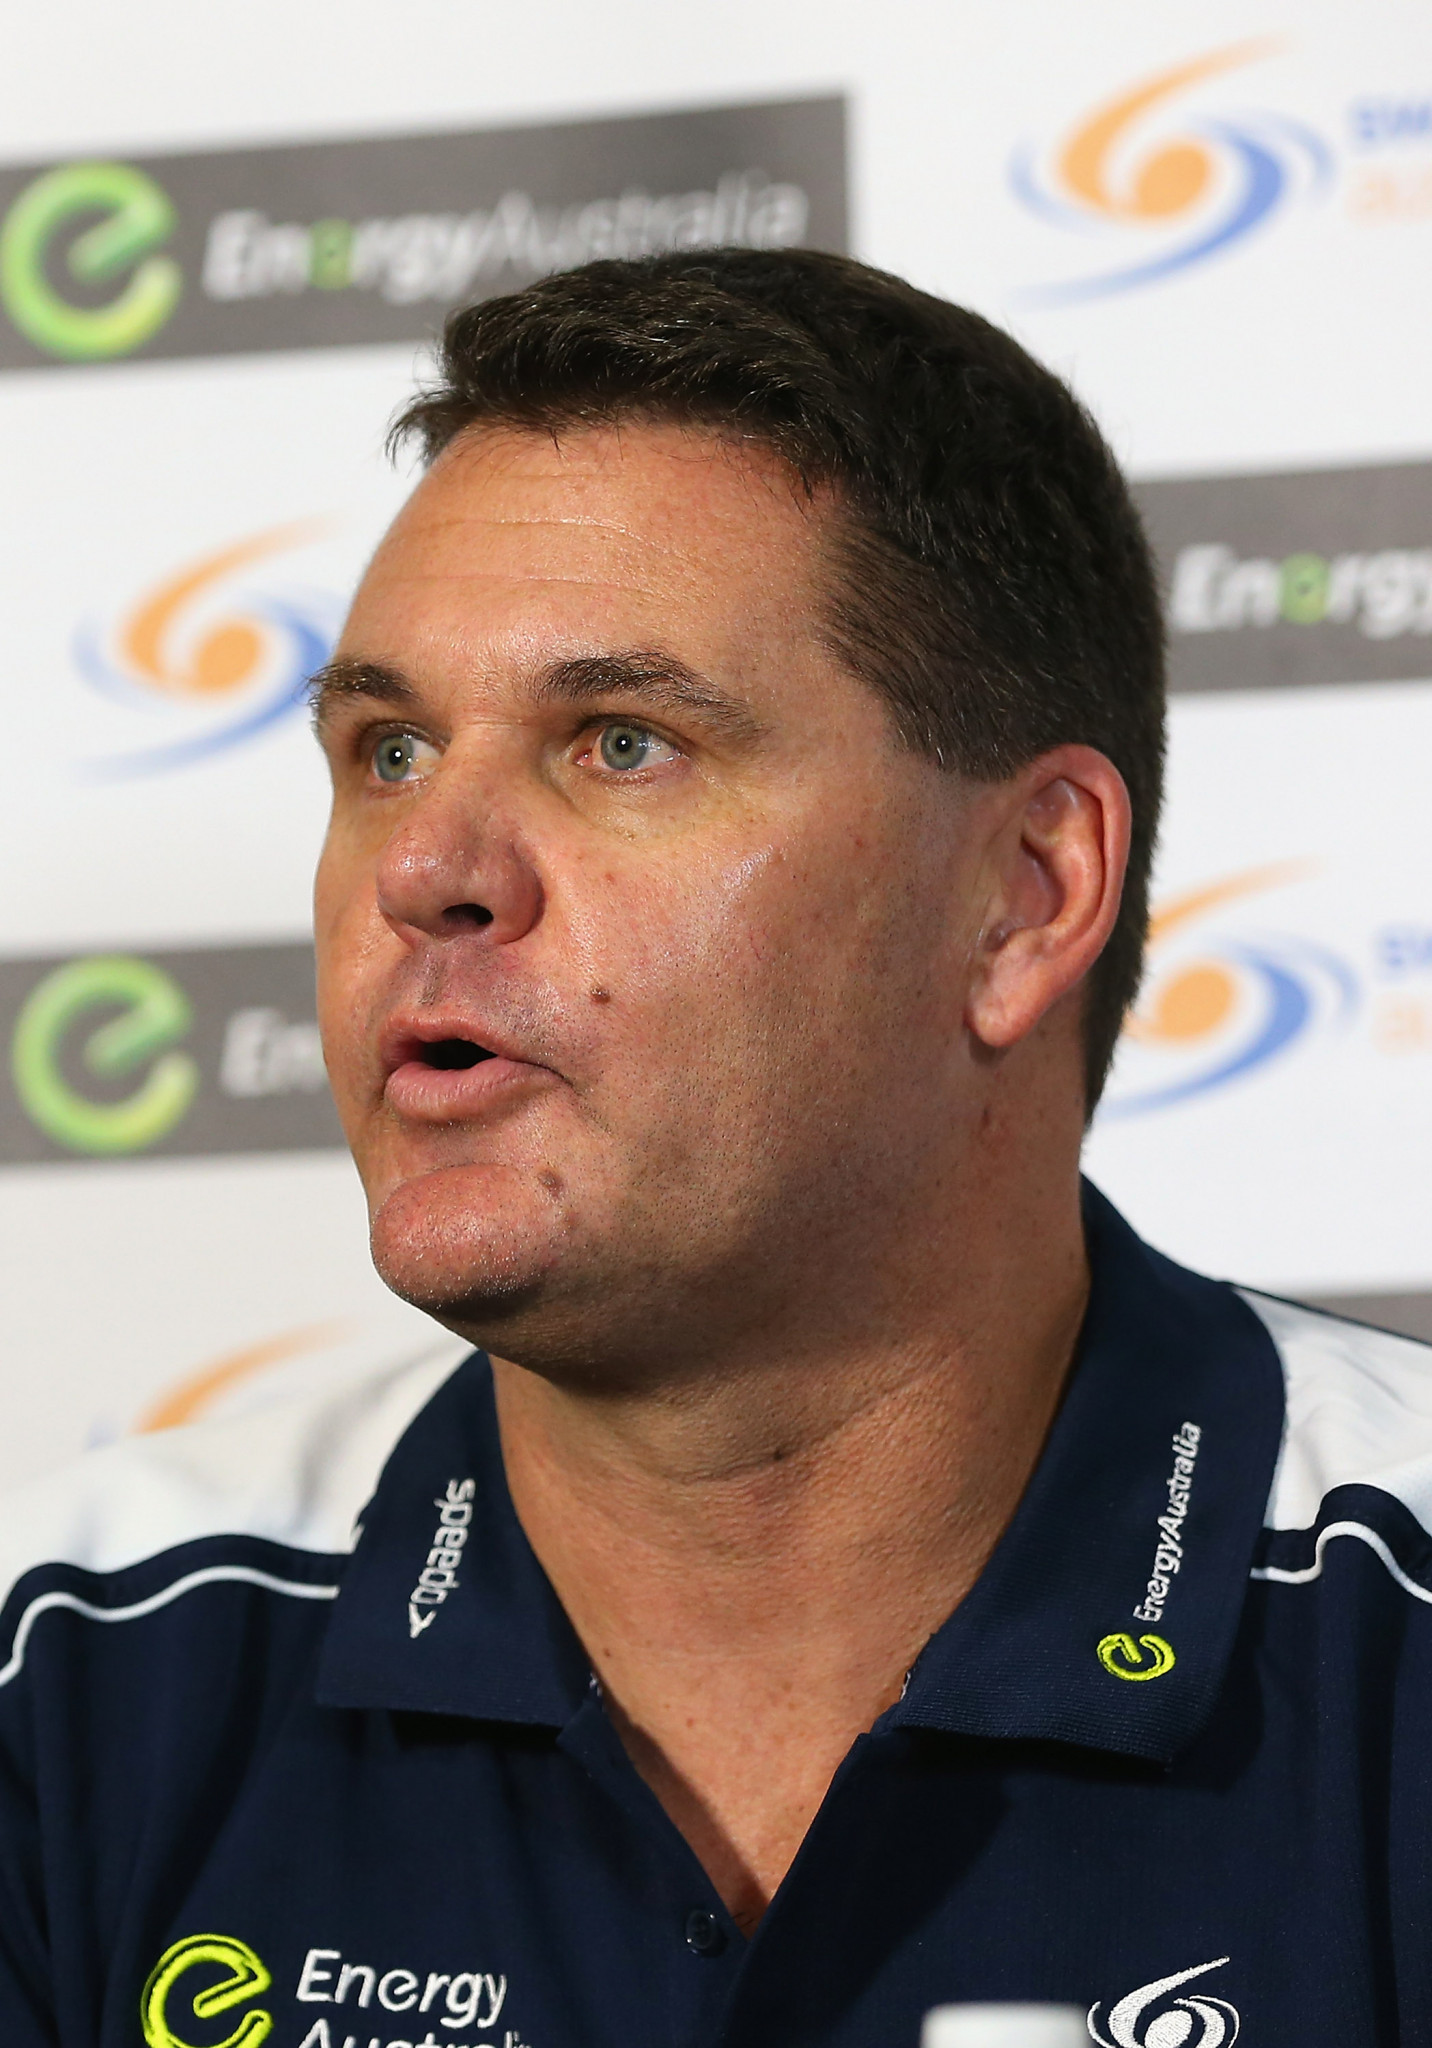 Rohan Taylor is set to take over as head coach of Swimming Australia ©Getty Images